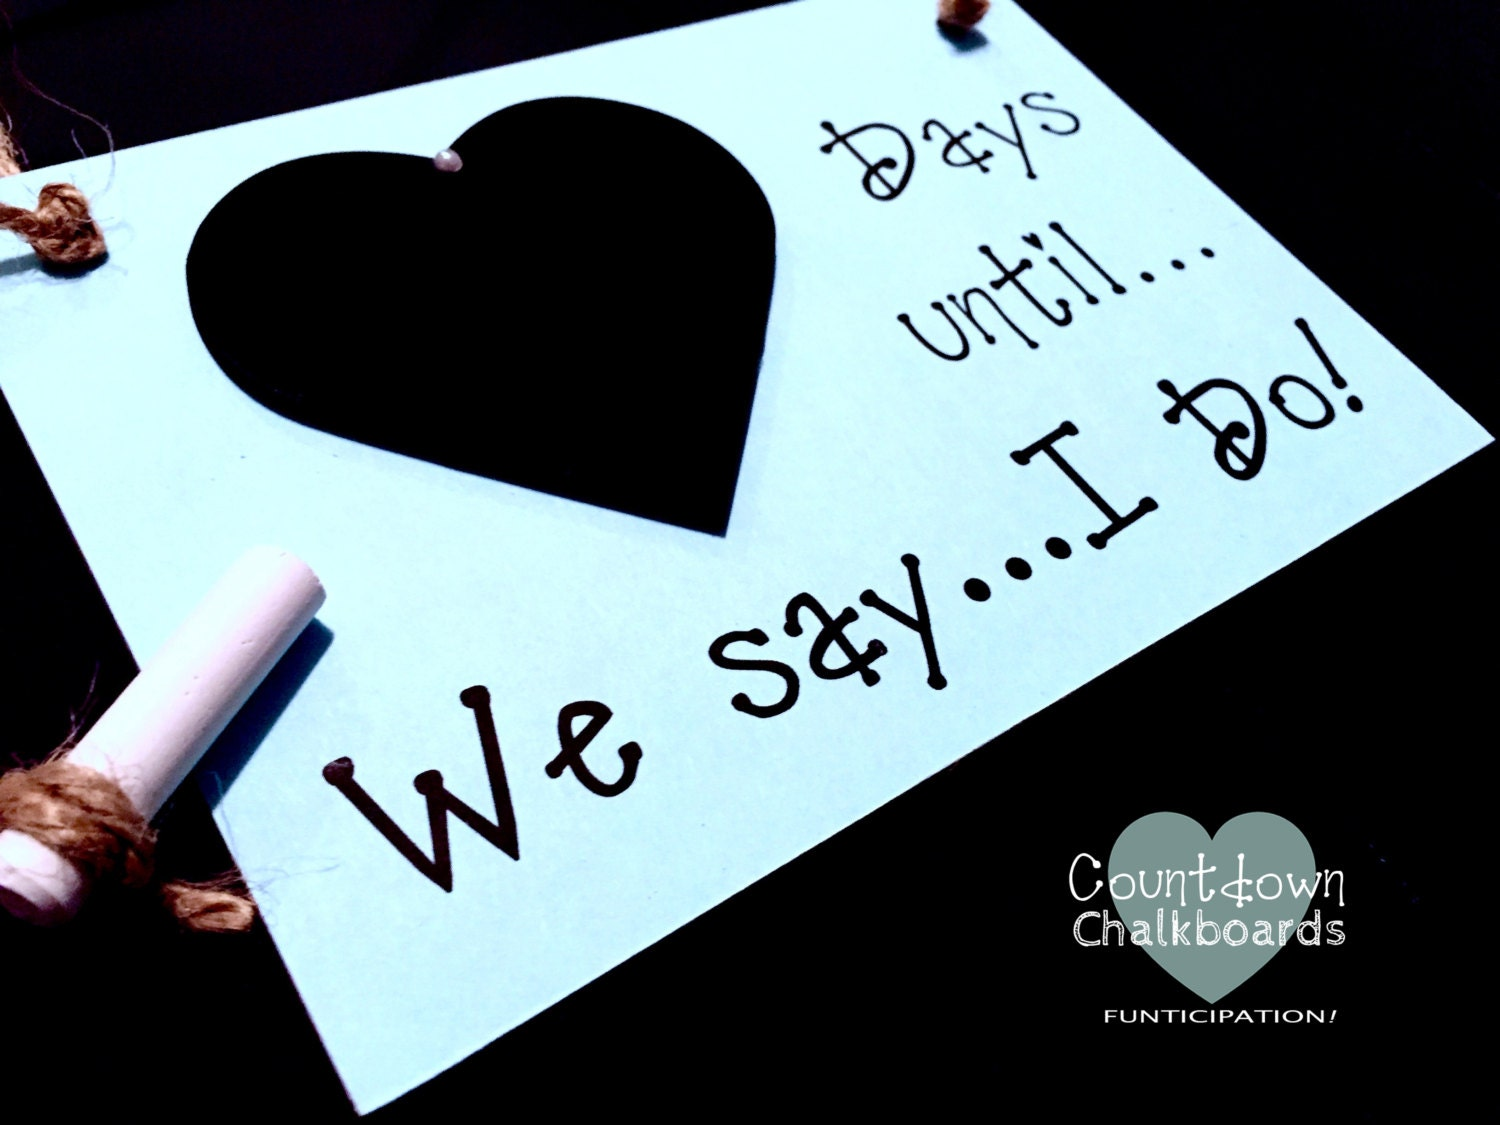 Wedding Gift For Fiance: Engagement Gift Idea. Fiancé Gift Wedding Countdown